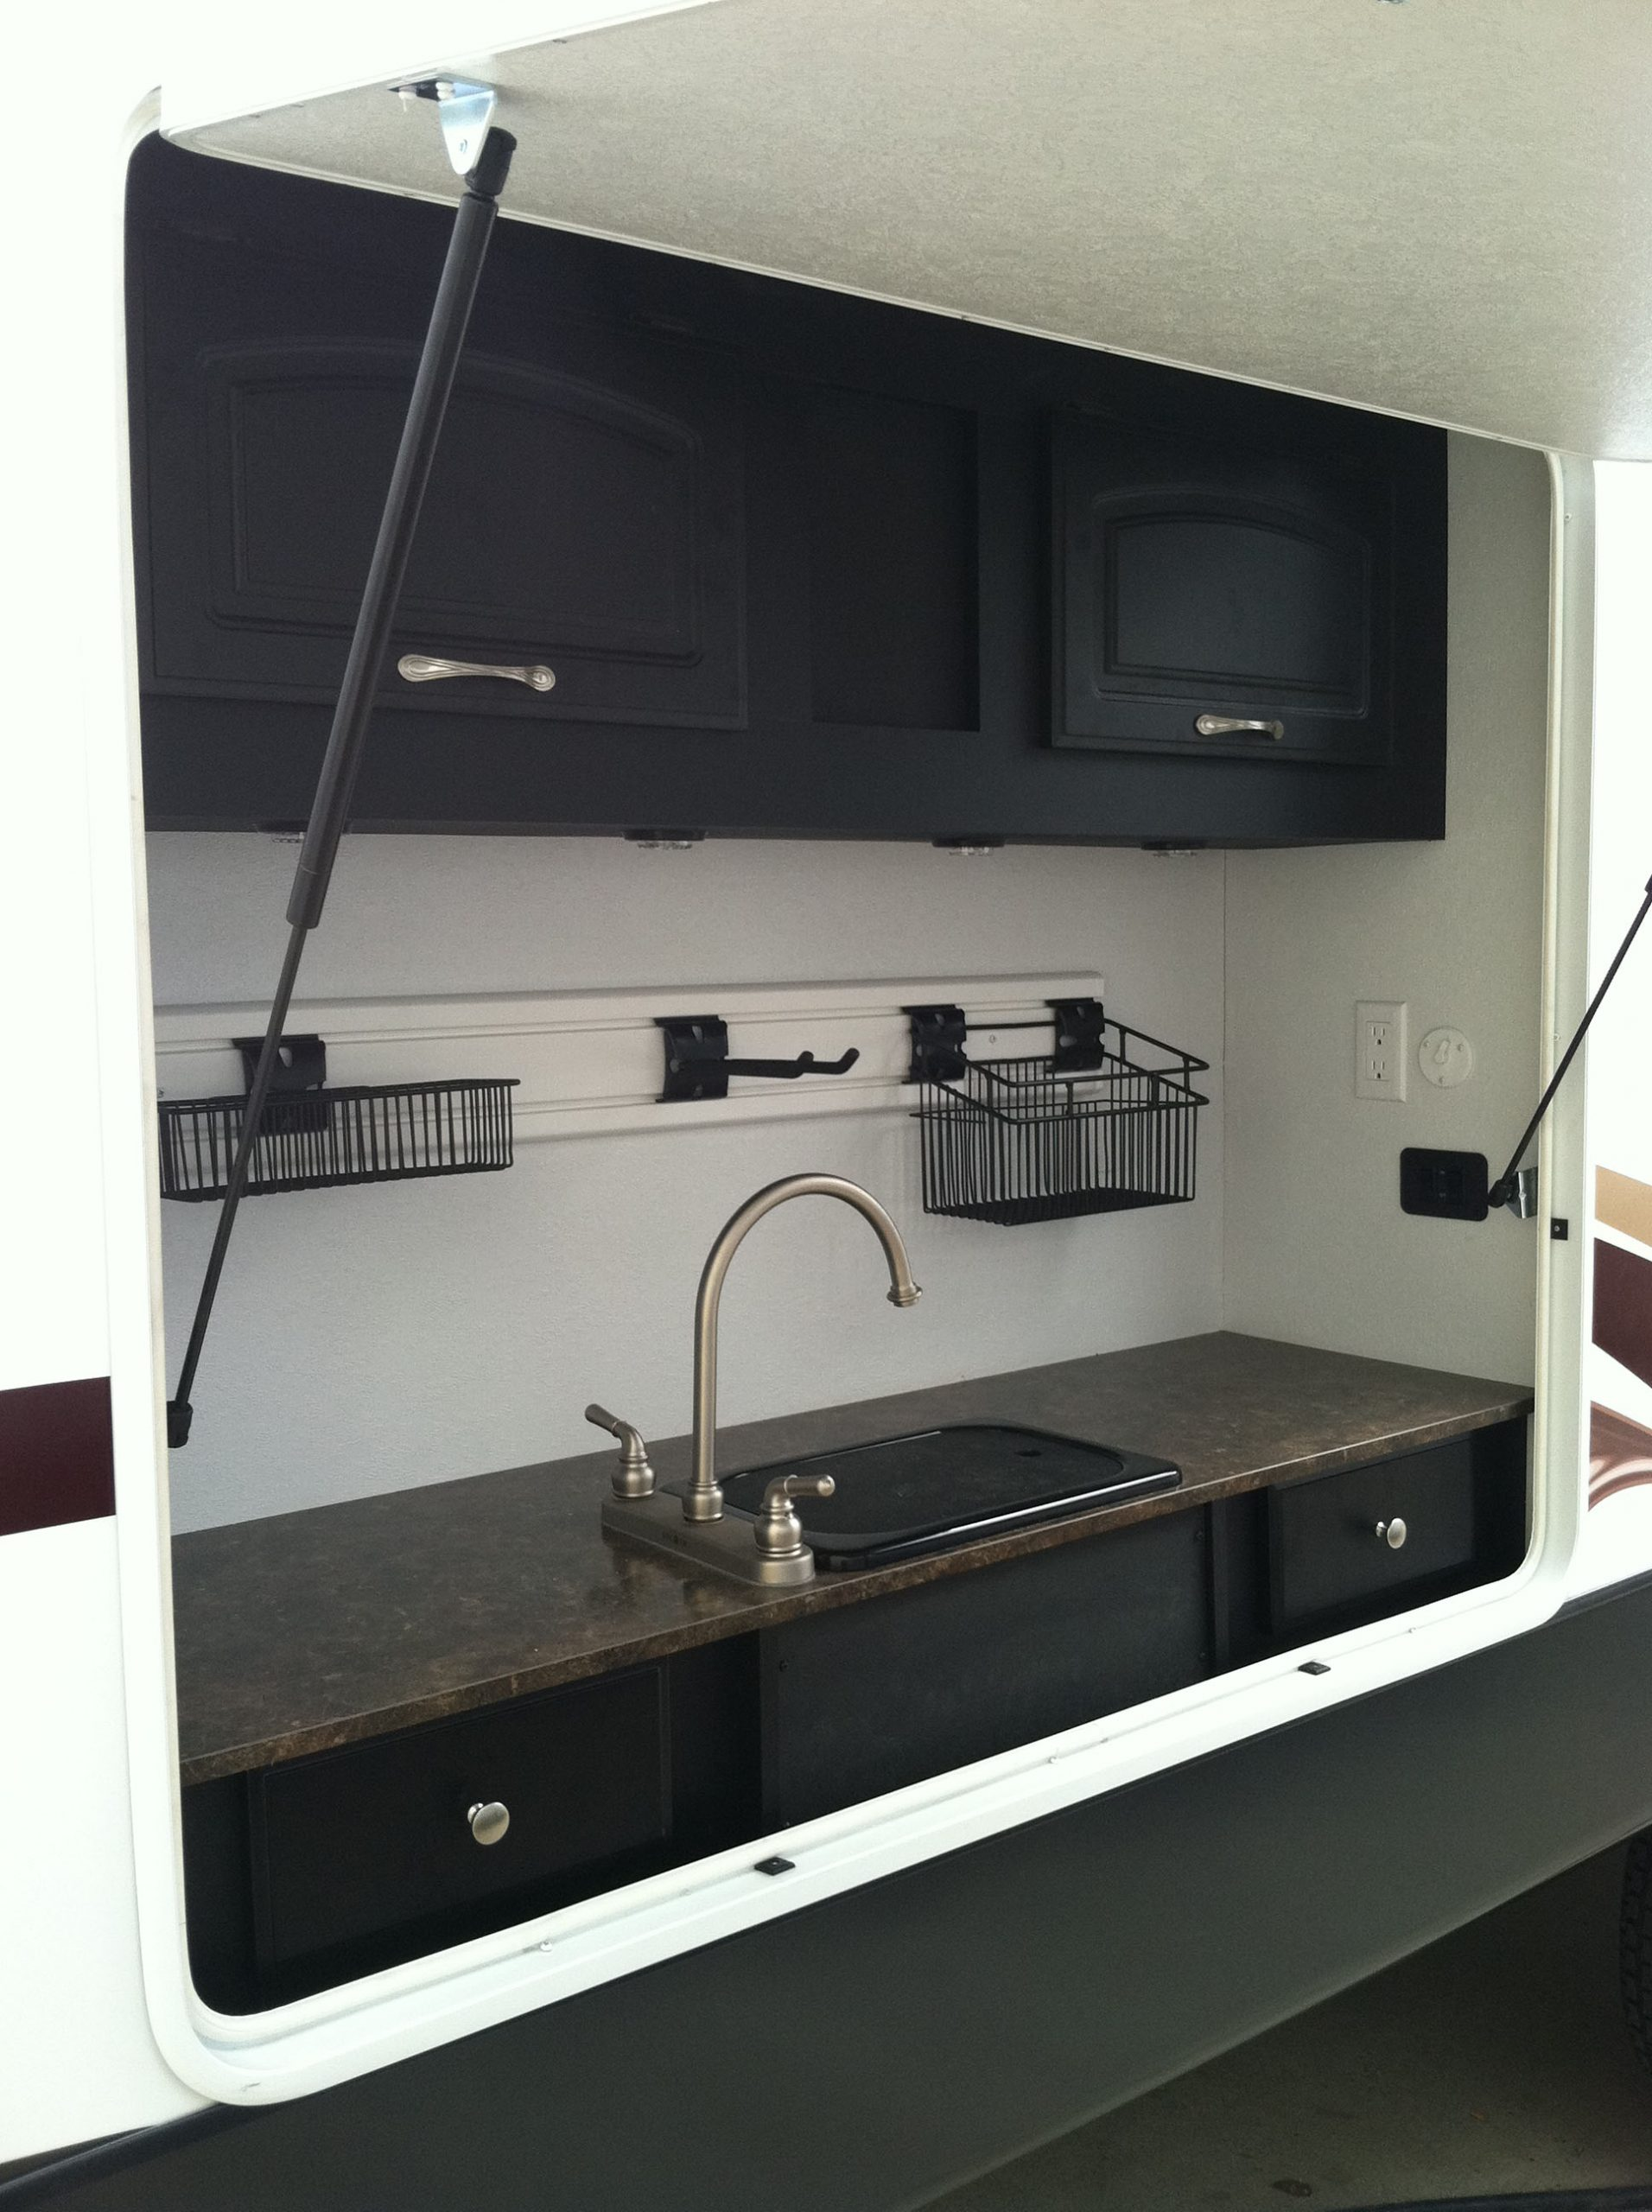 Slatwall organization system for outdoor RV kitchen